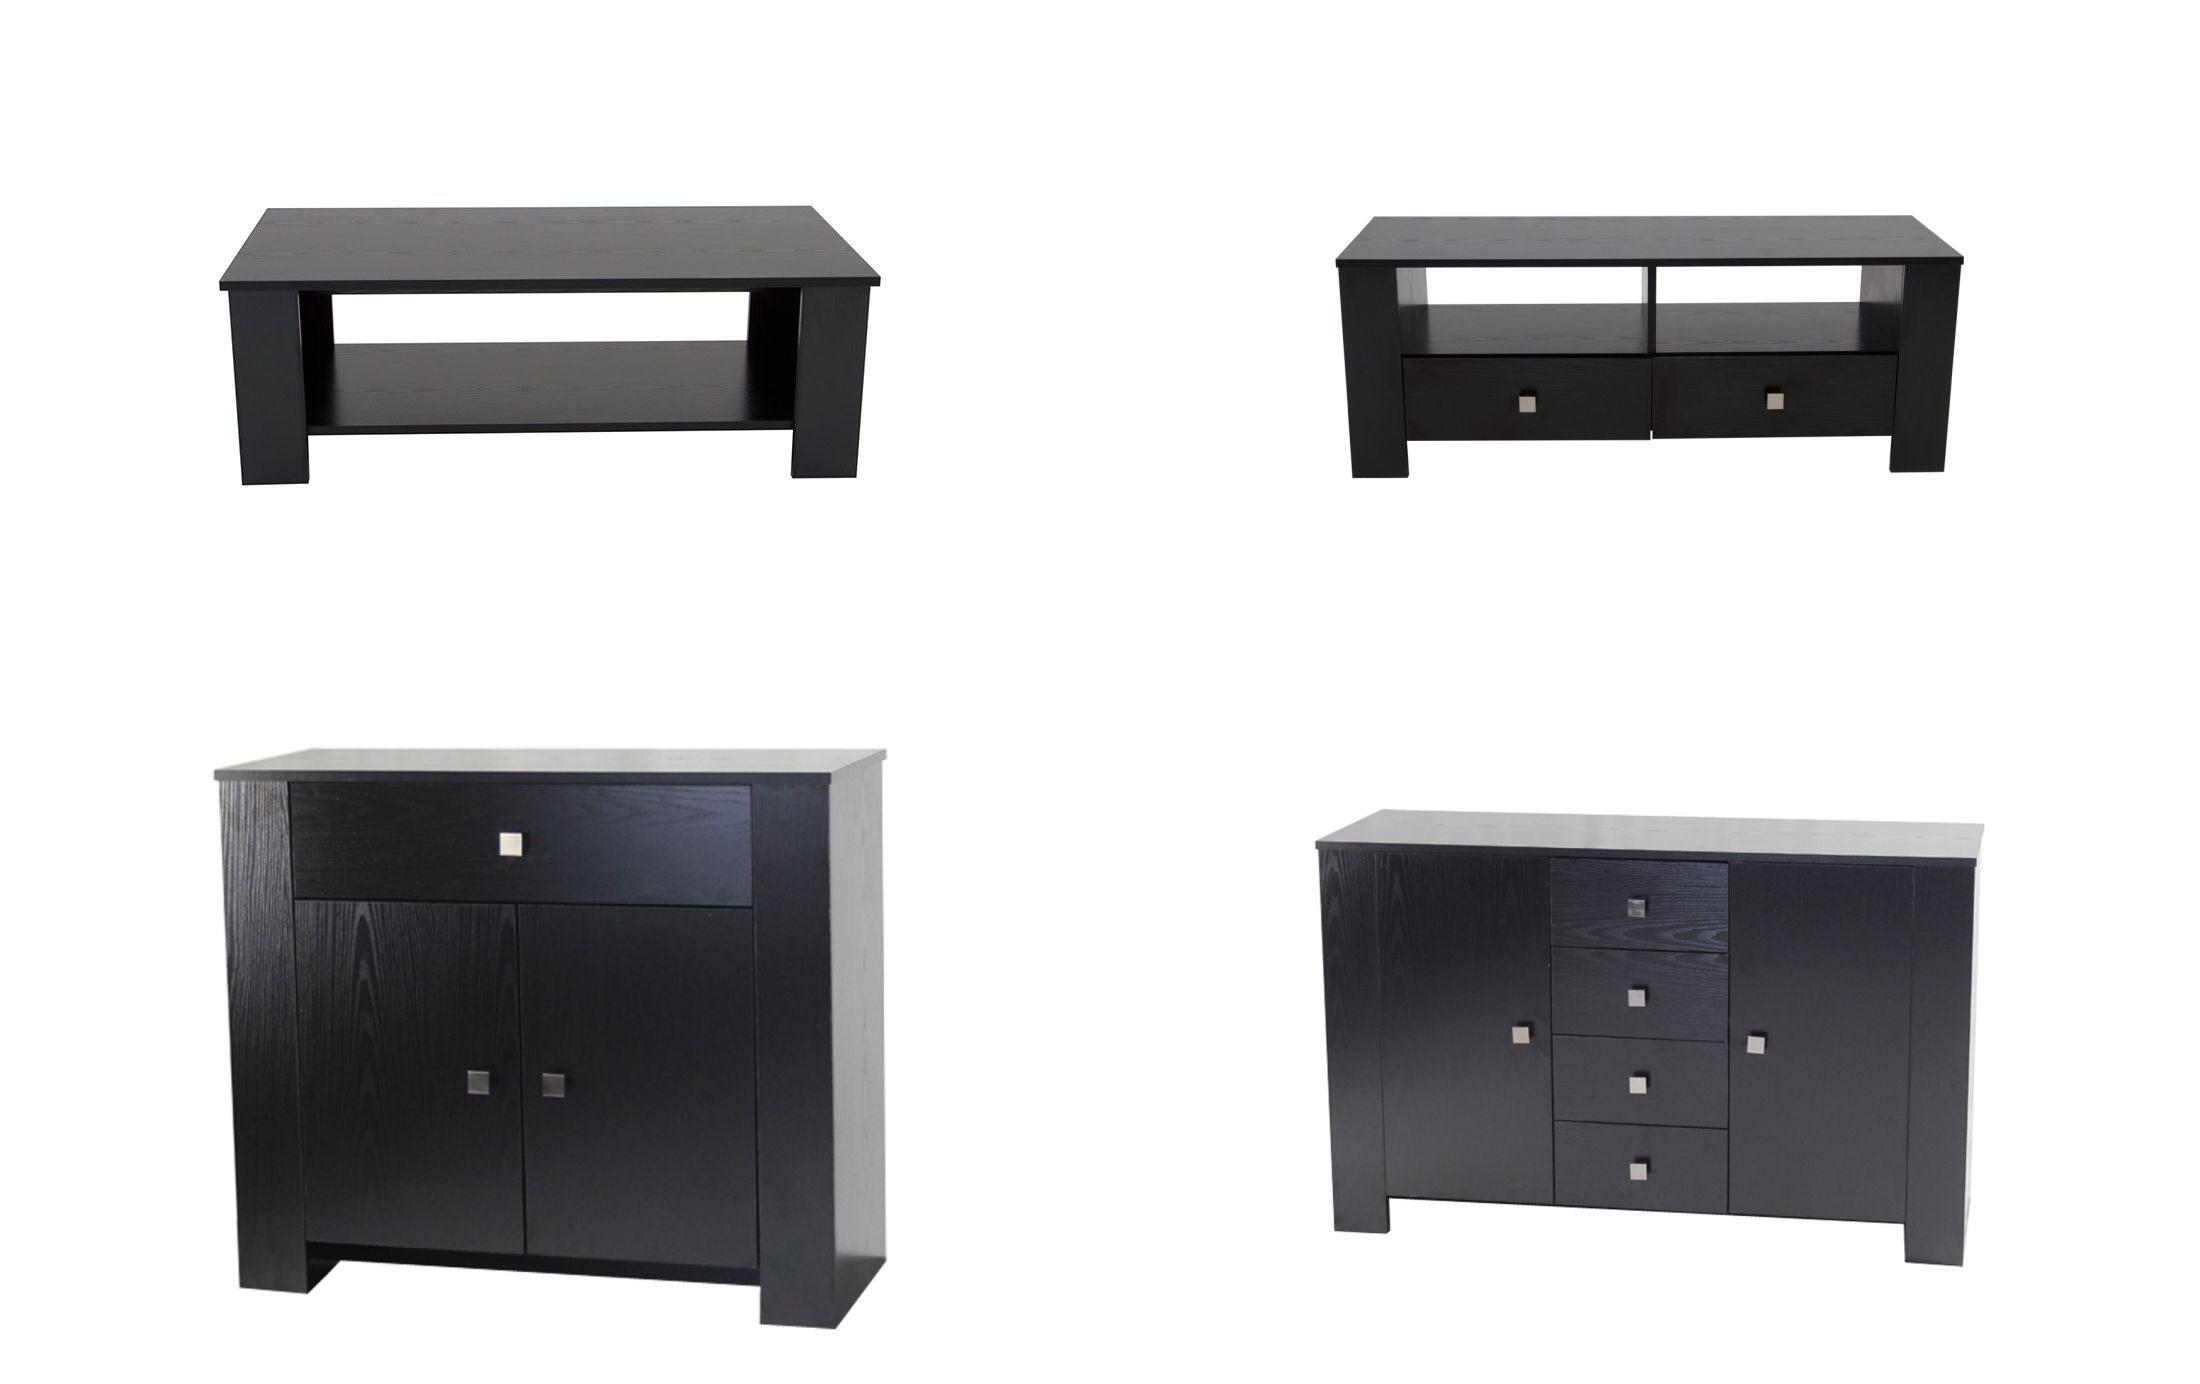 Bourne Black Ash Effect Furniture Coffee Table Sideboard Cupboard